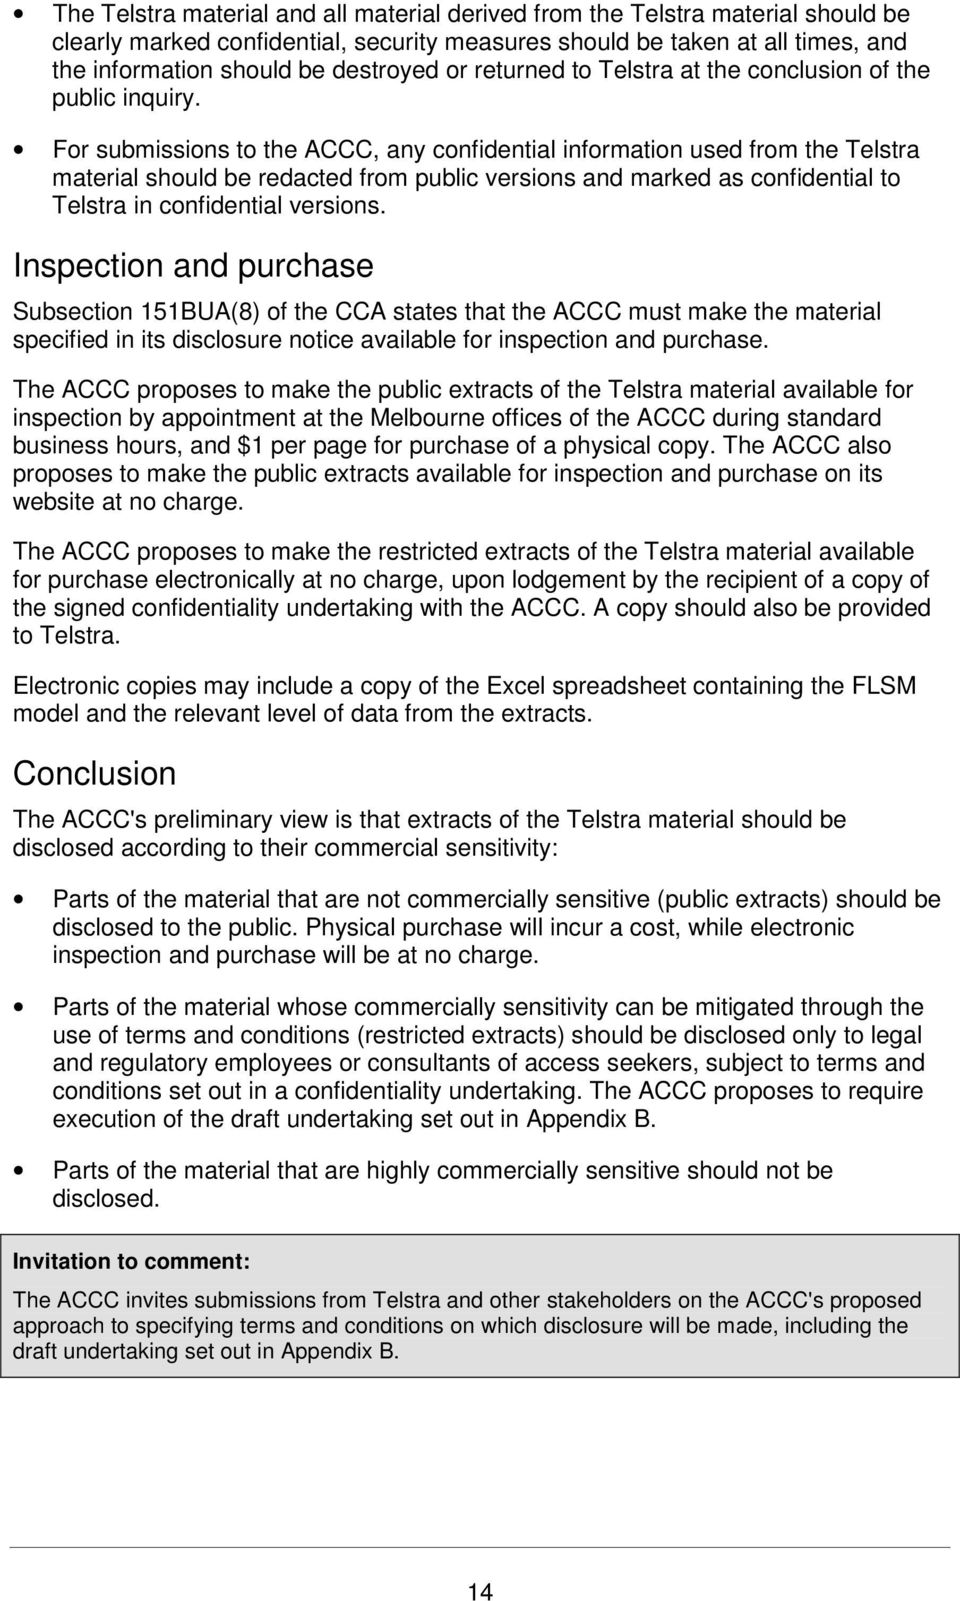 For submissions to the ACCC, any confidential information used from the Telstra material should be redacted from public versions and marked as confidential to Telstra in confidential versions.